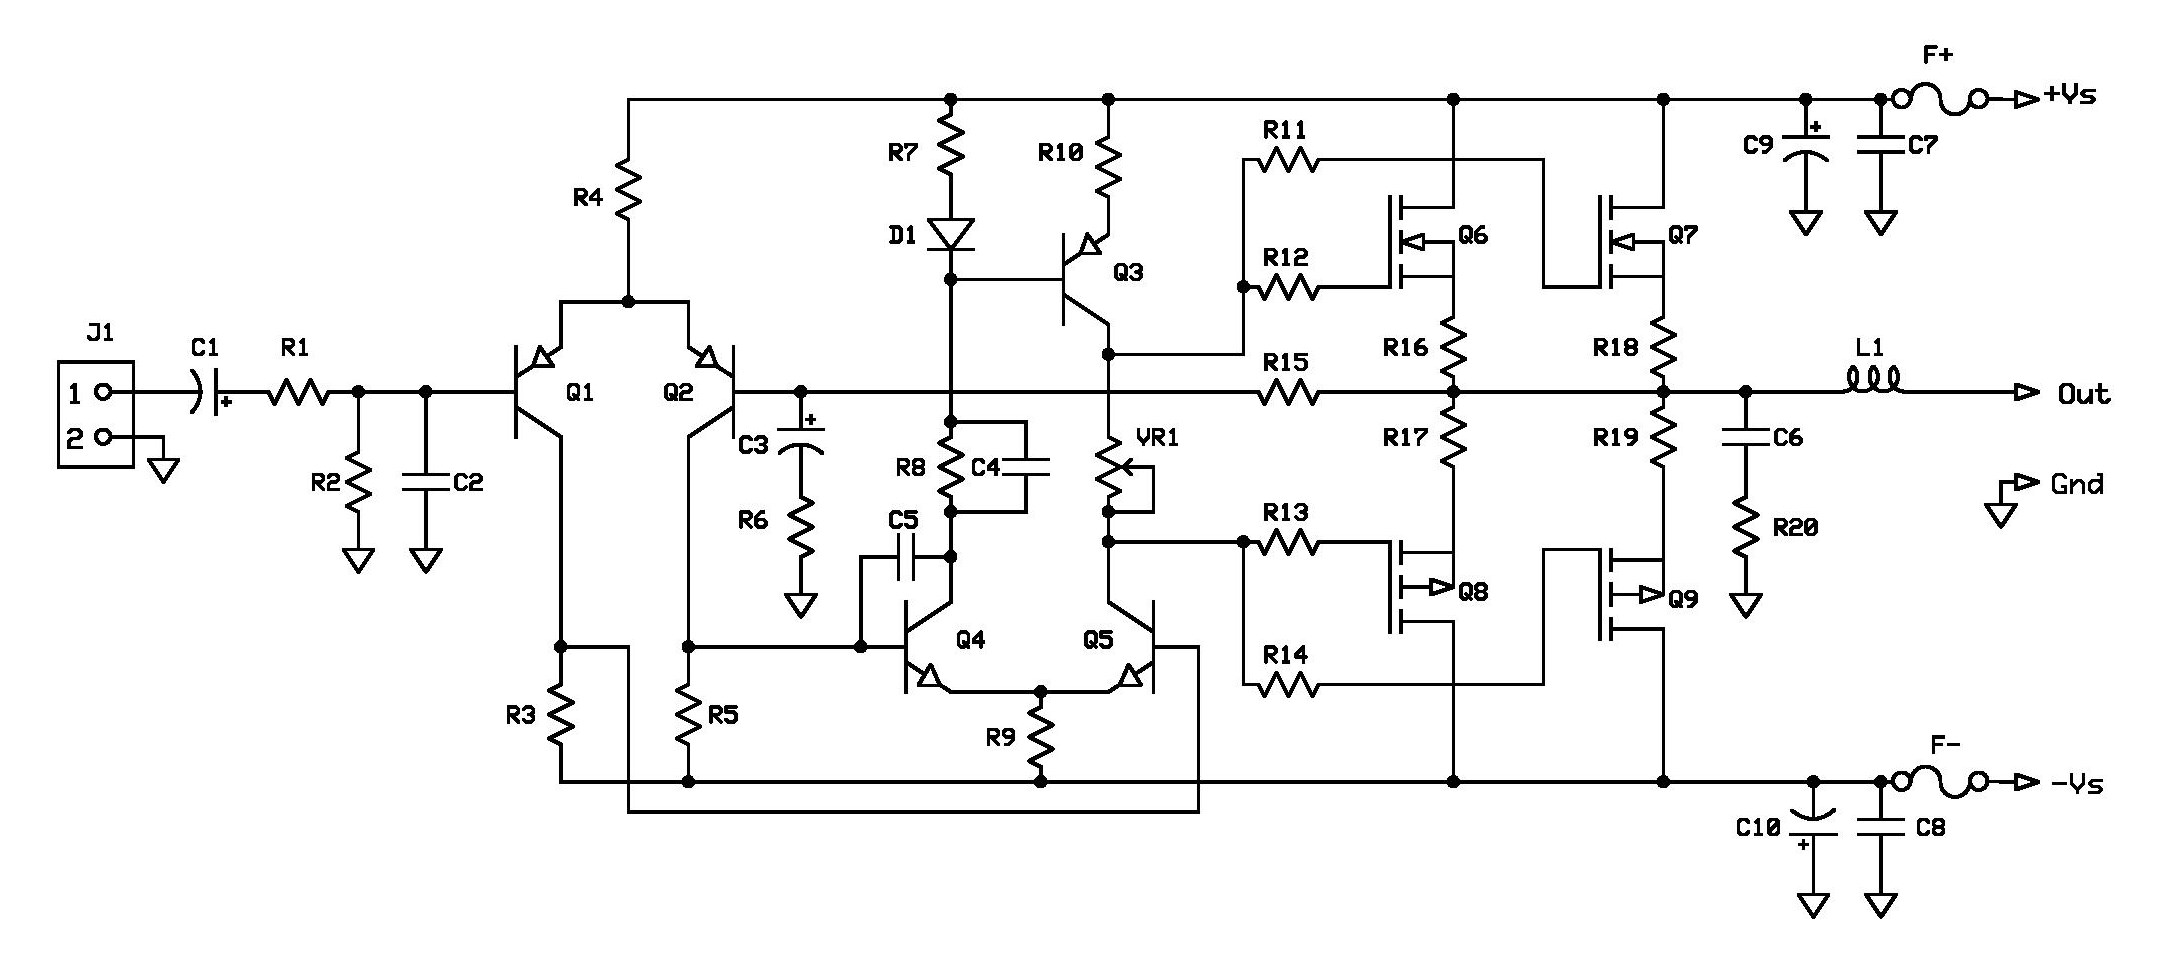 5 Watt Amplifier Circuit Diagram